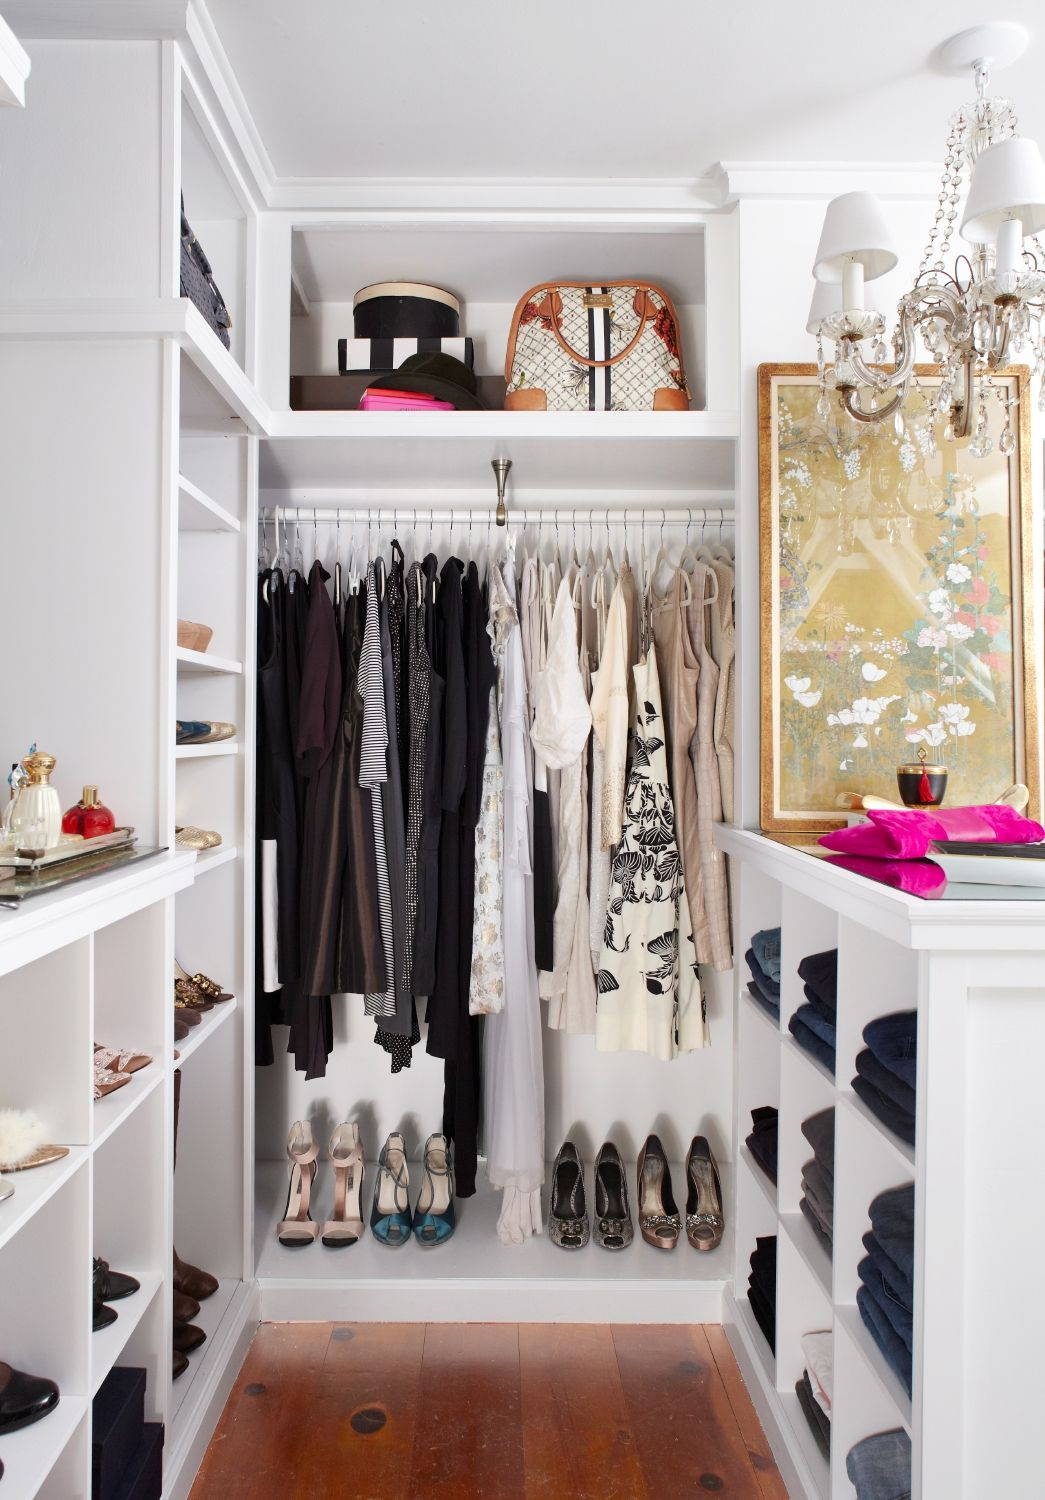 Walk In Closet Design Ideas impressive yet elegant walk in closet ideas freshomecom Find This Pin And More On Interior Ideas Small Walk In Closet Designs